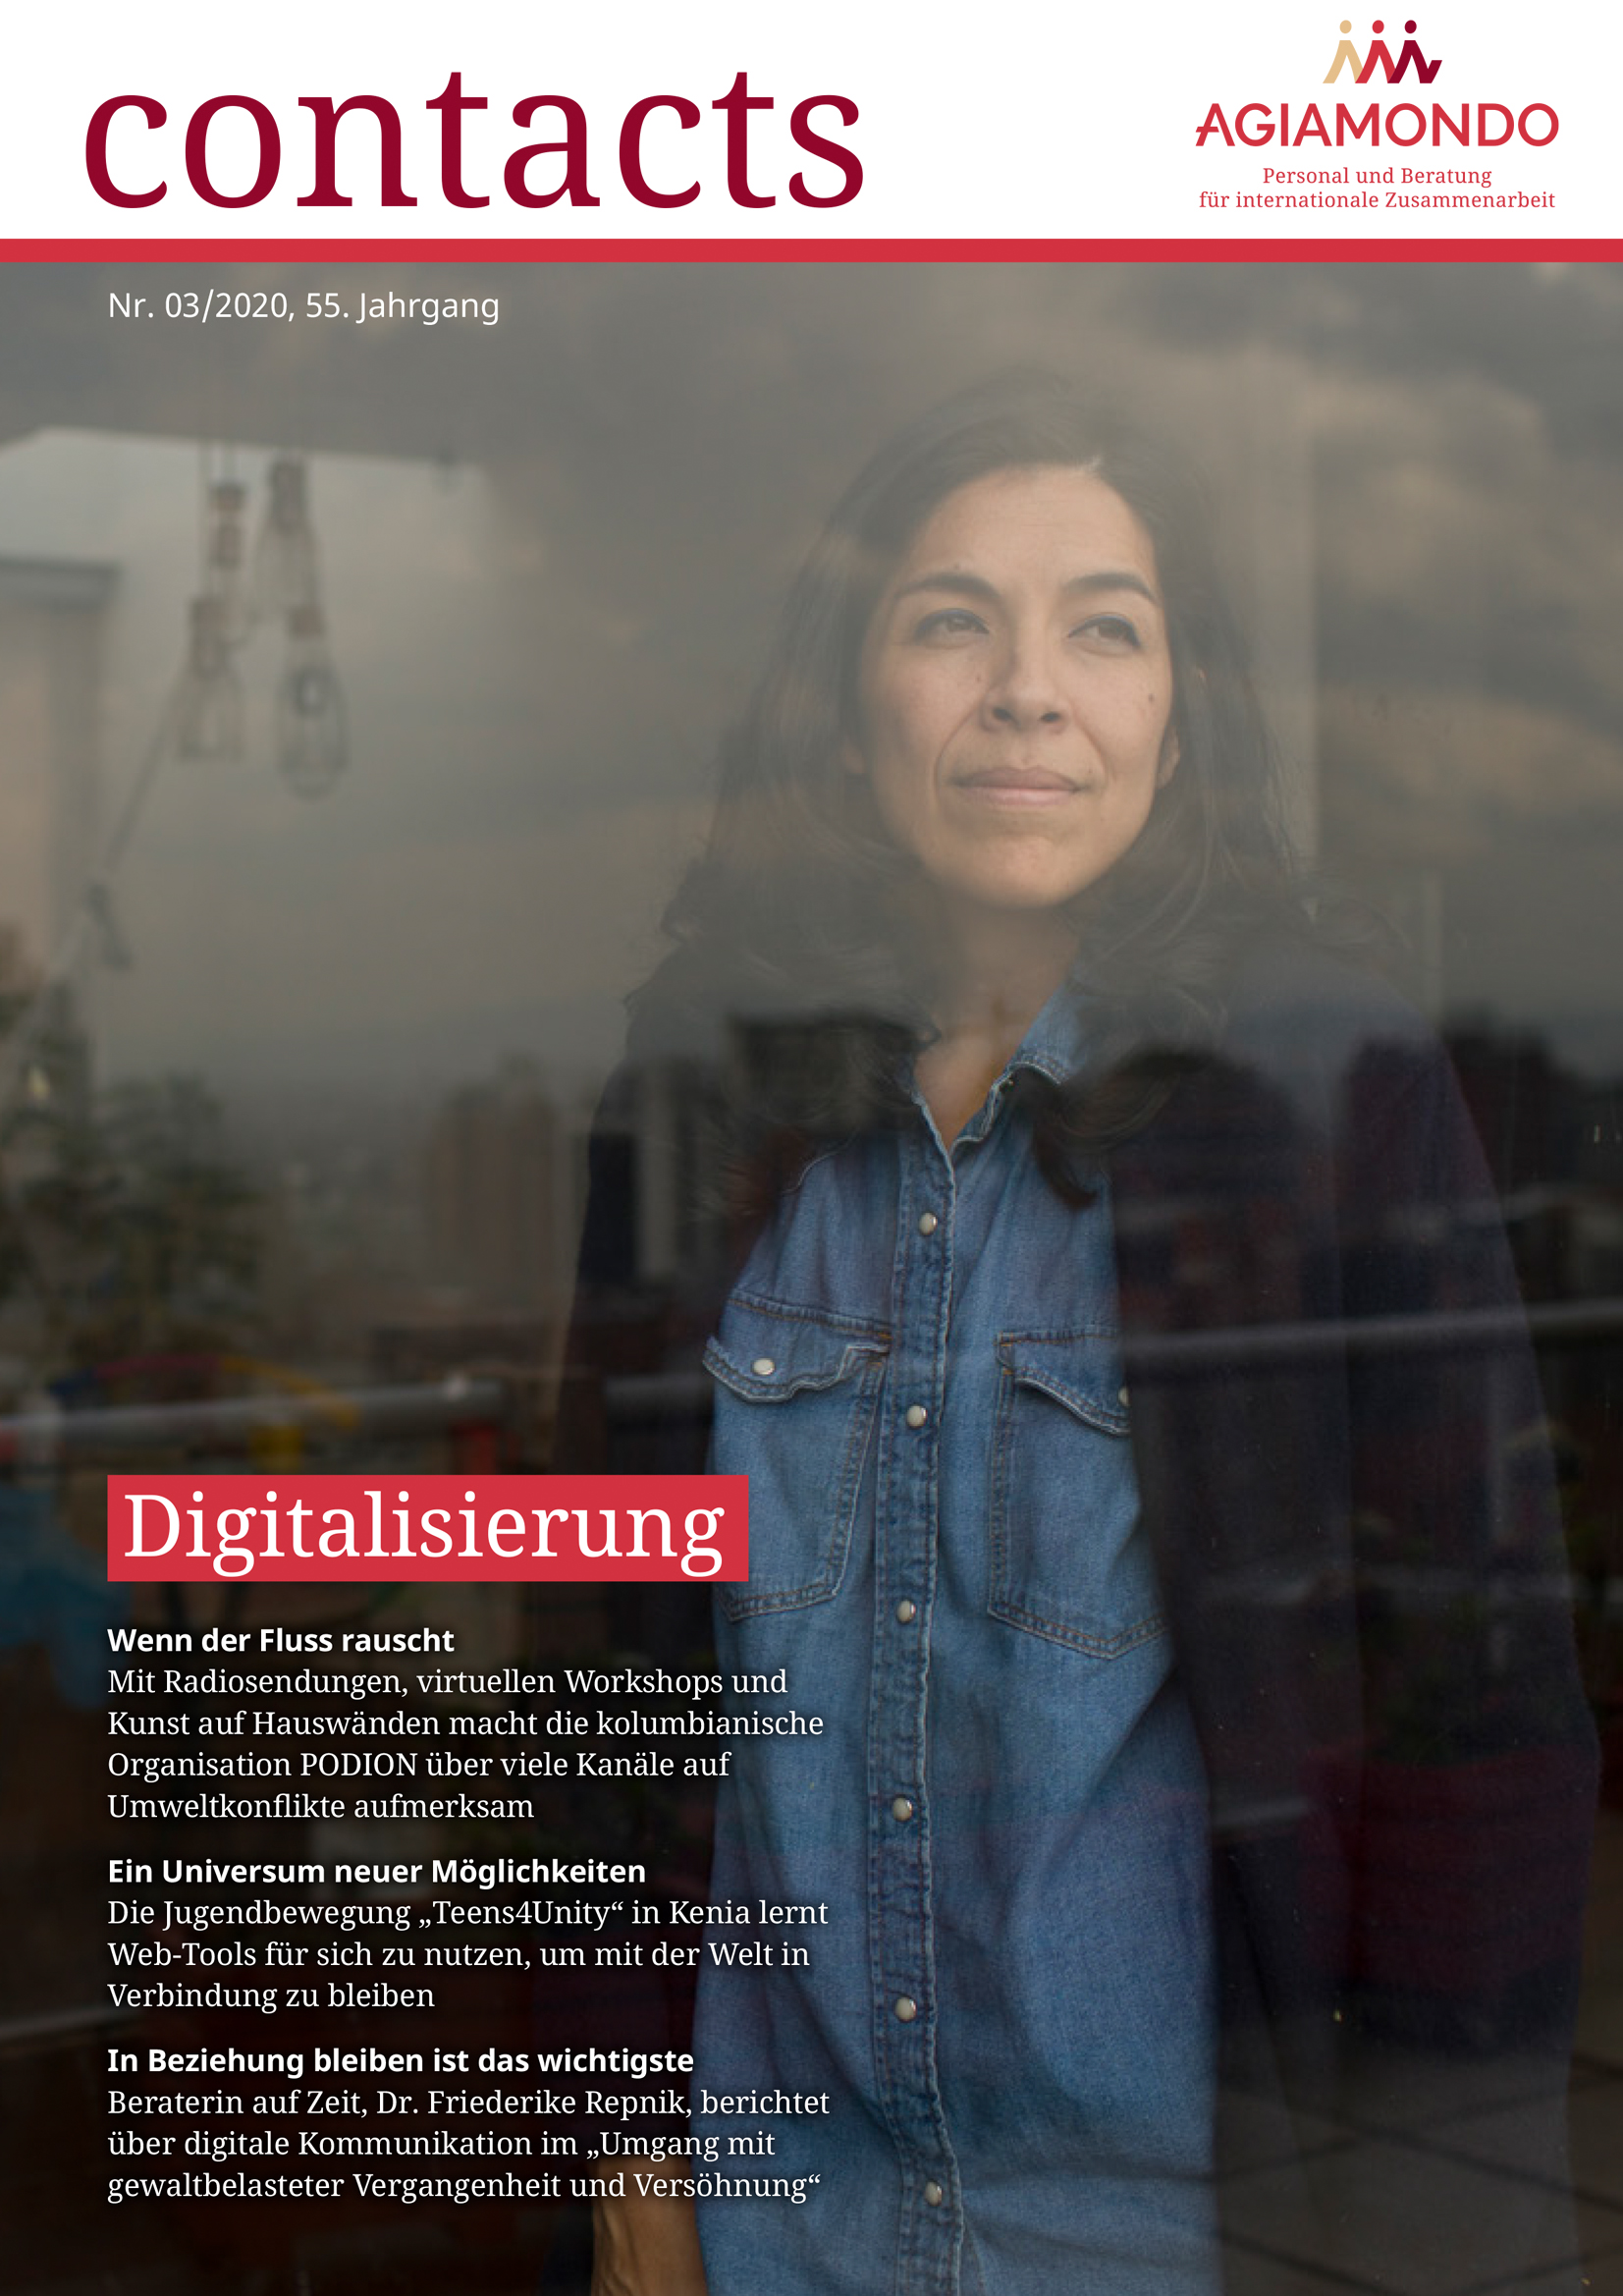 Contacts 3/ 2020 - Digitalisierung